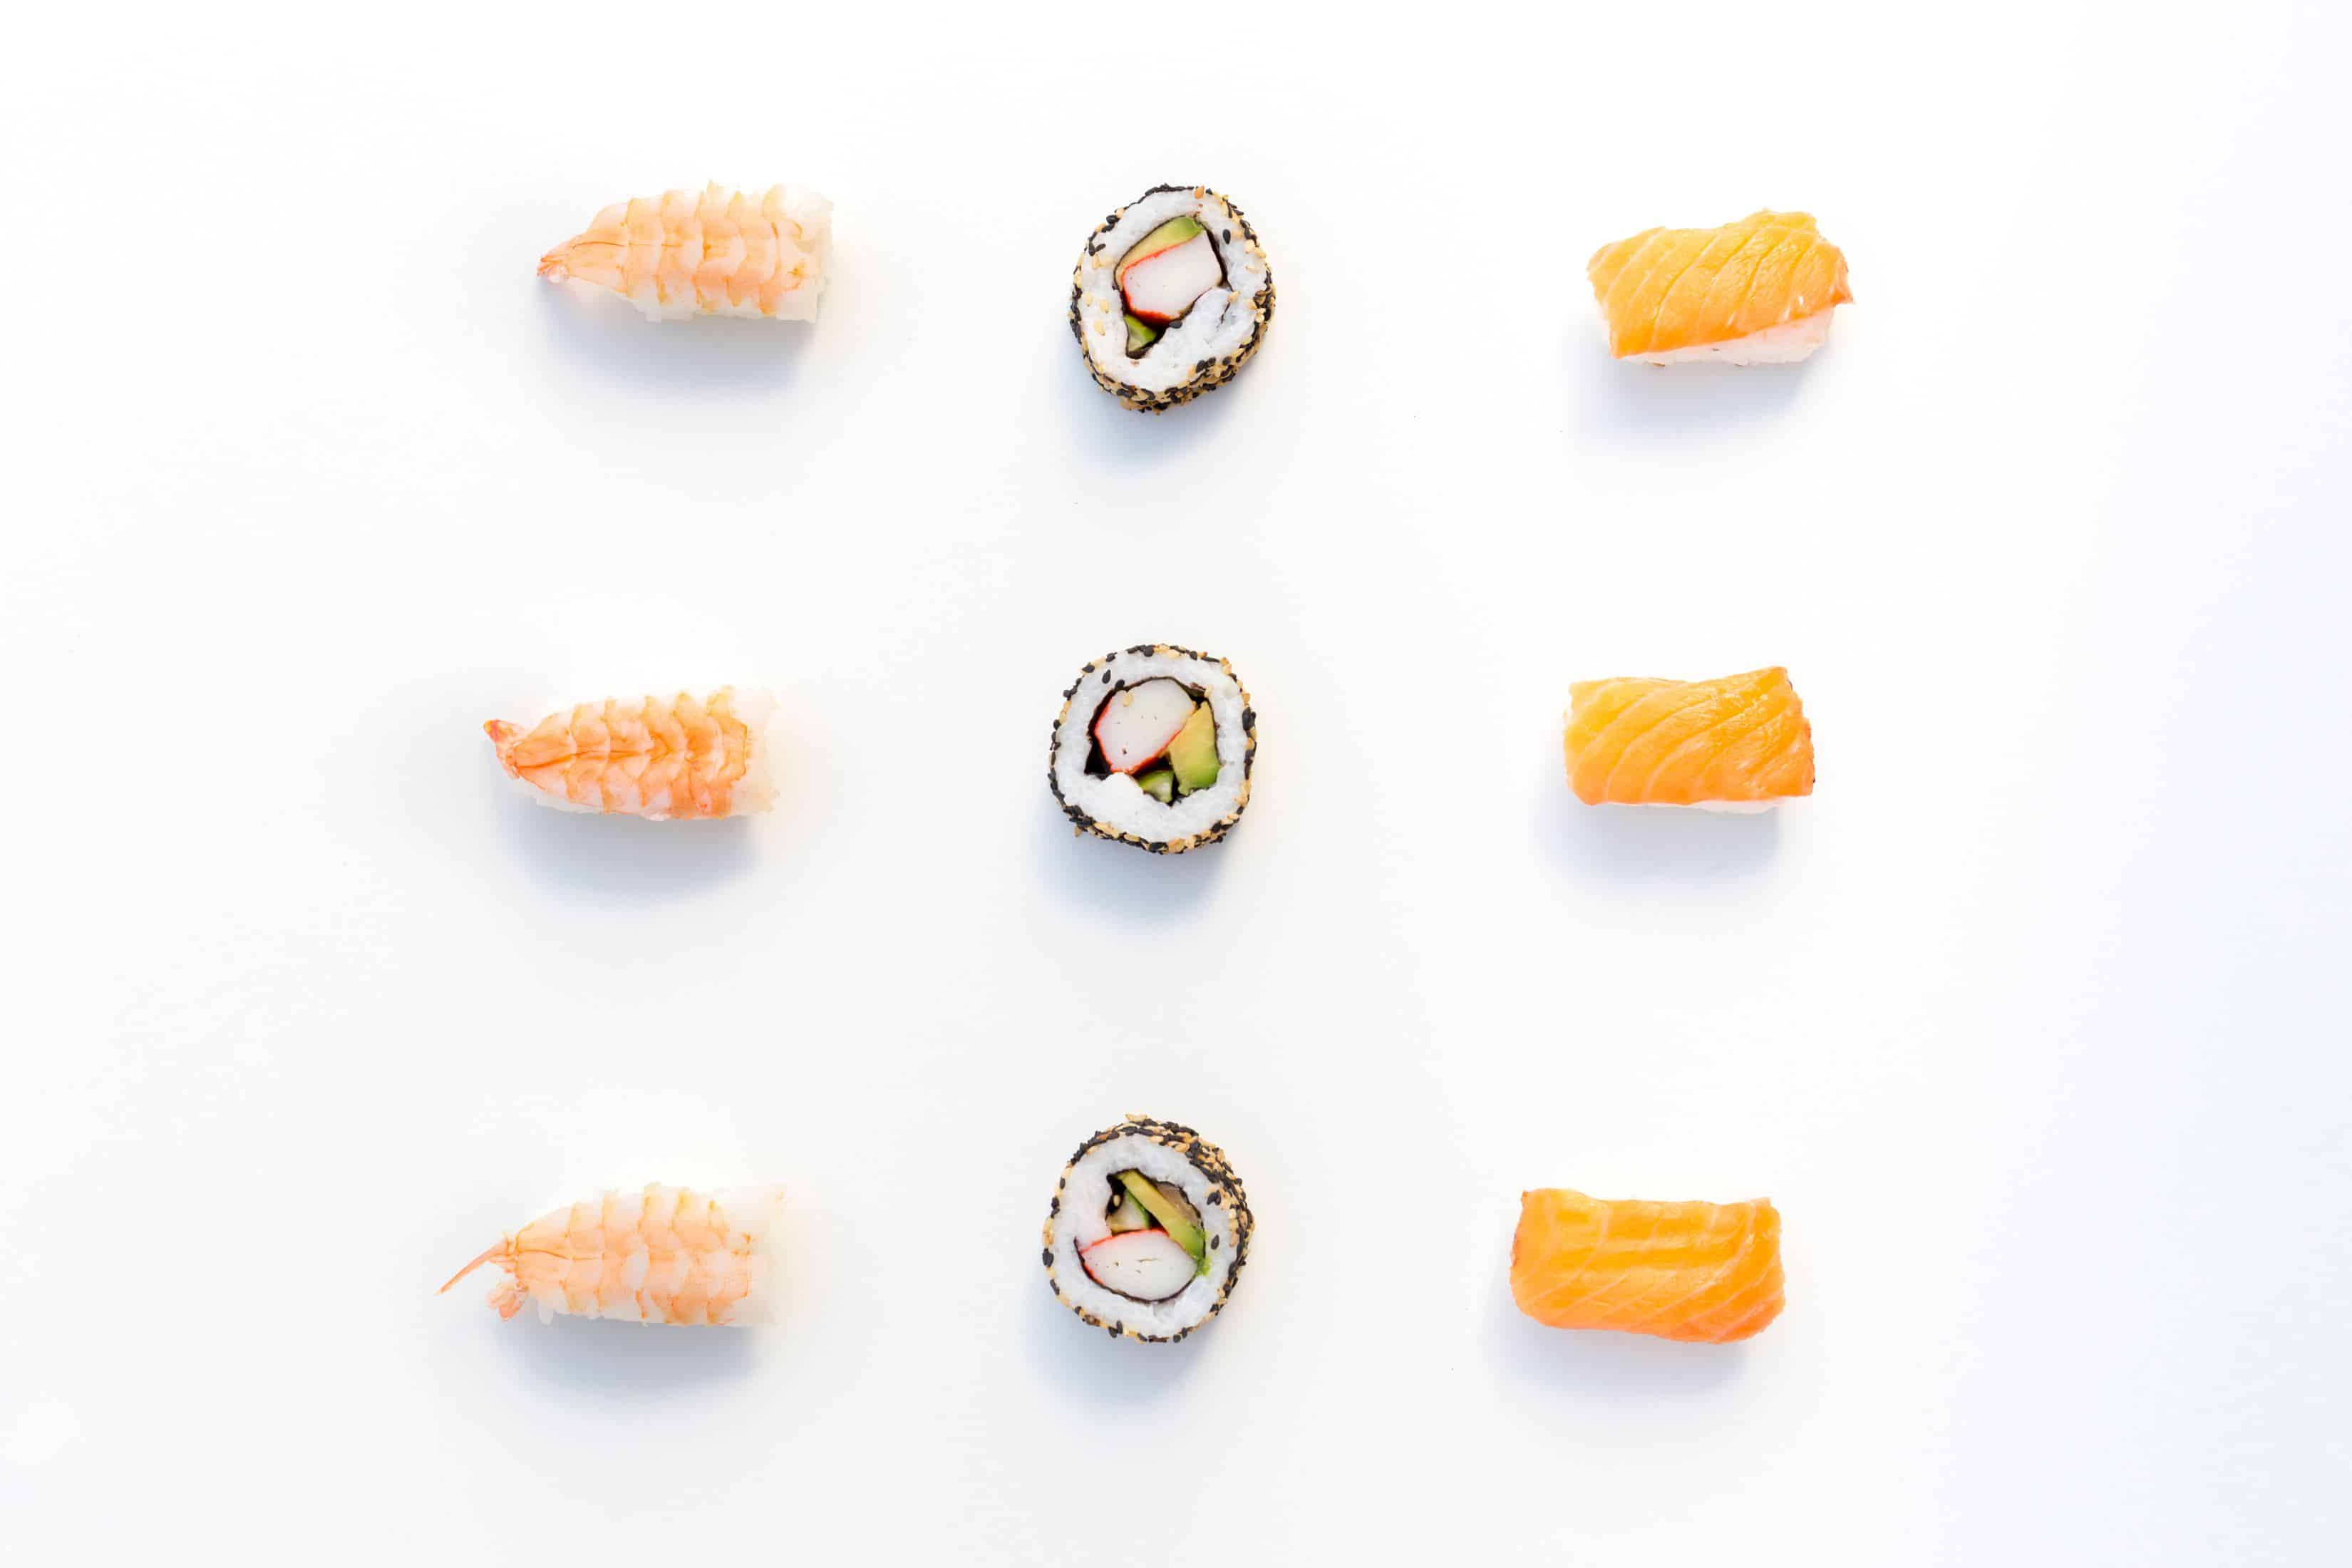 a flatlay picture of sushi